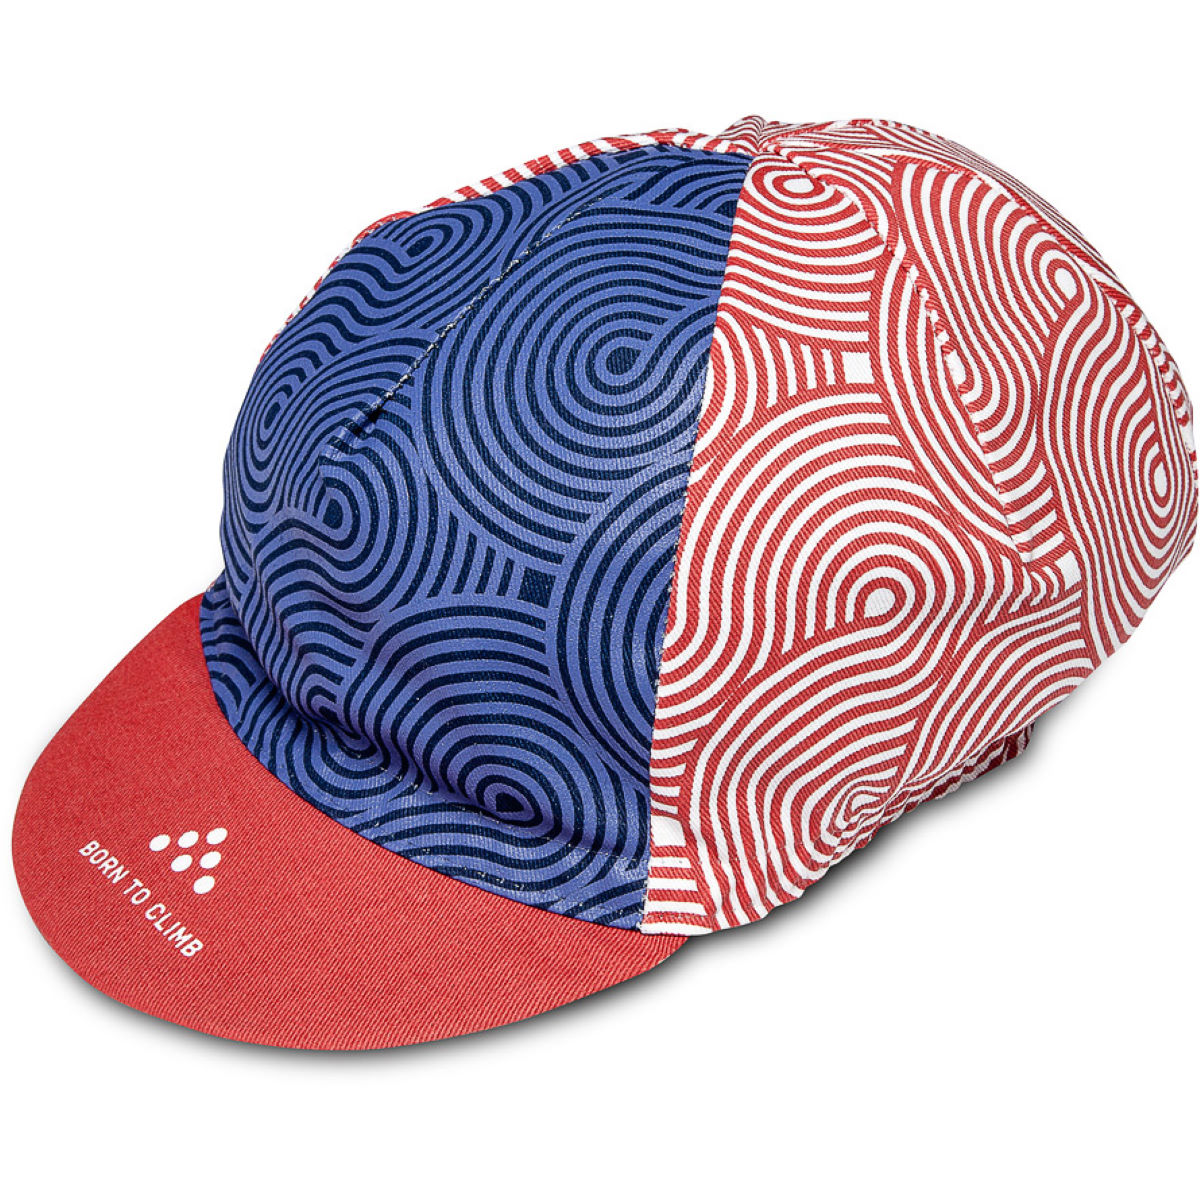 Casquette Isadore Albula Climbers - Taille unique Blue/Red